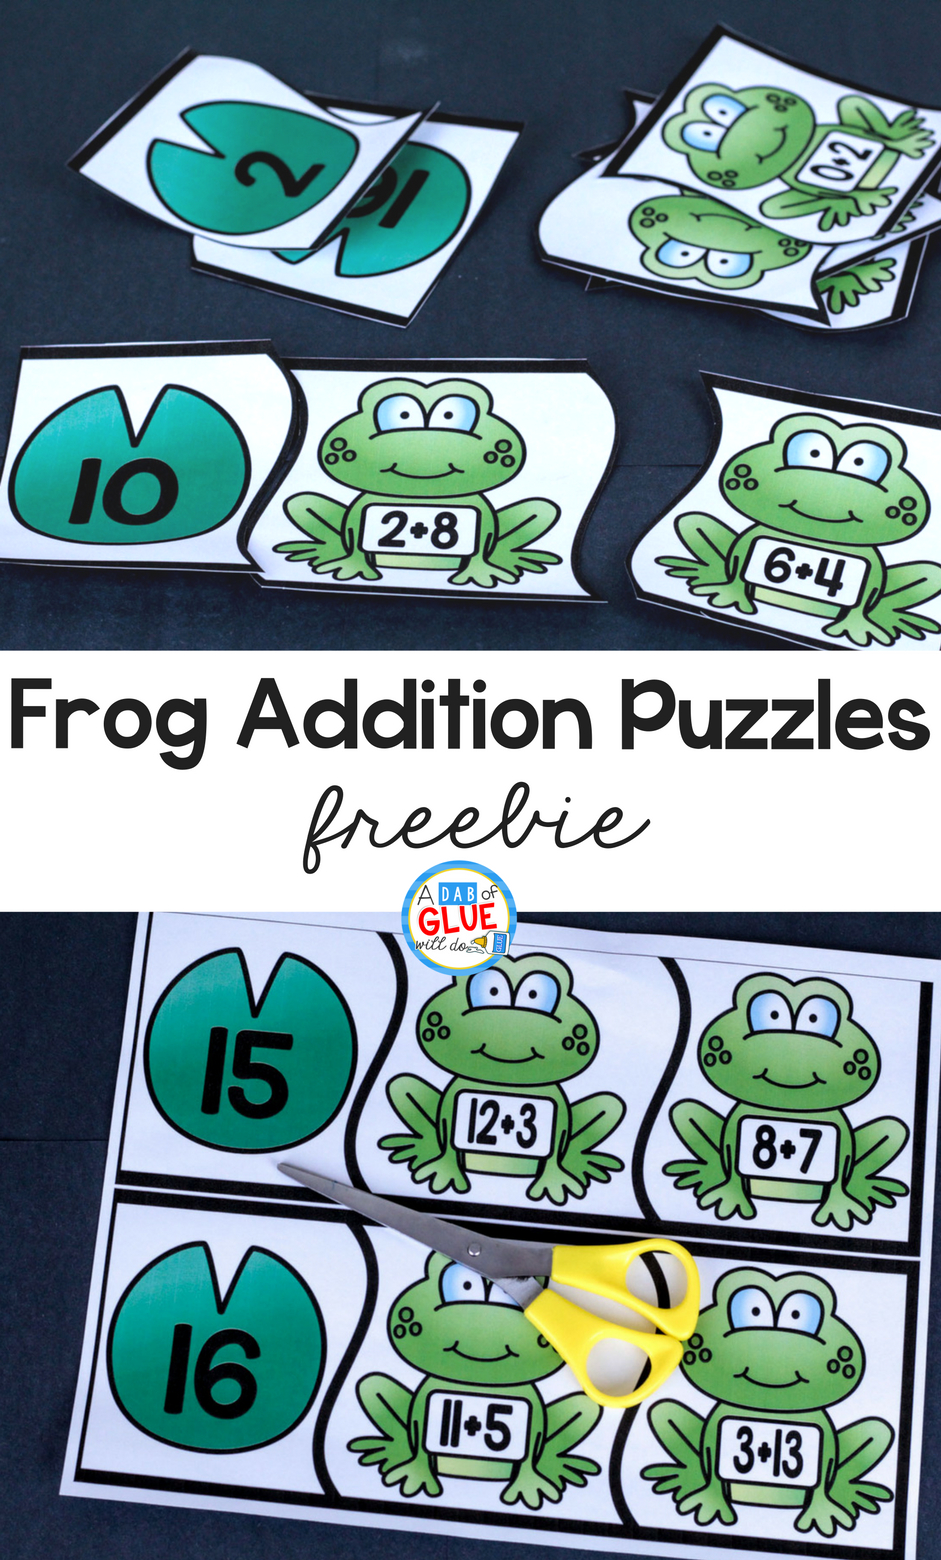 Frog Addition Puzzles - - Printable Frog Puzzle